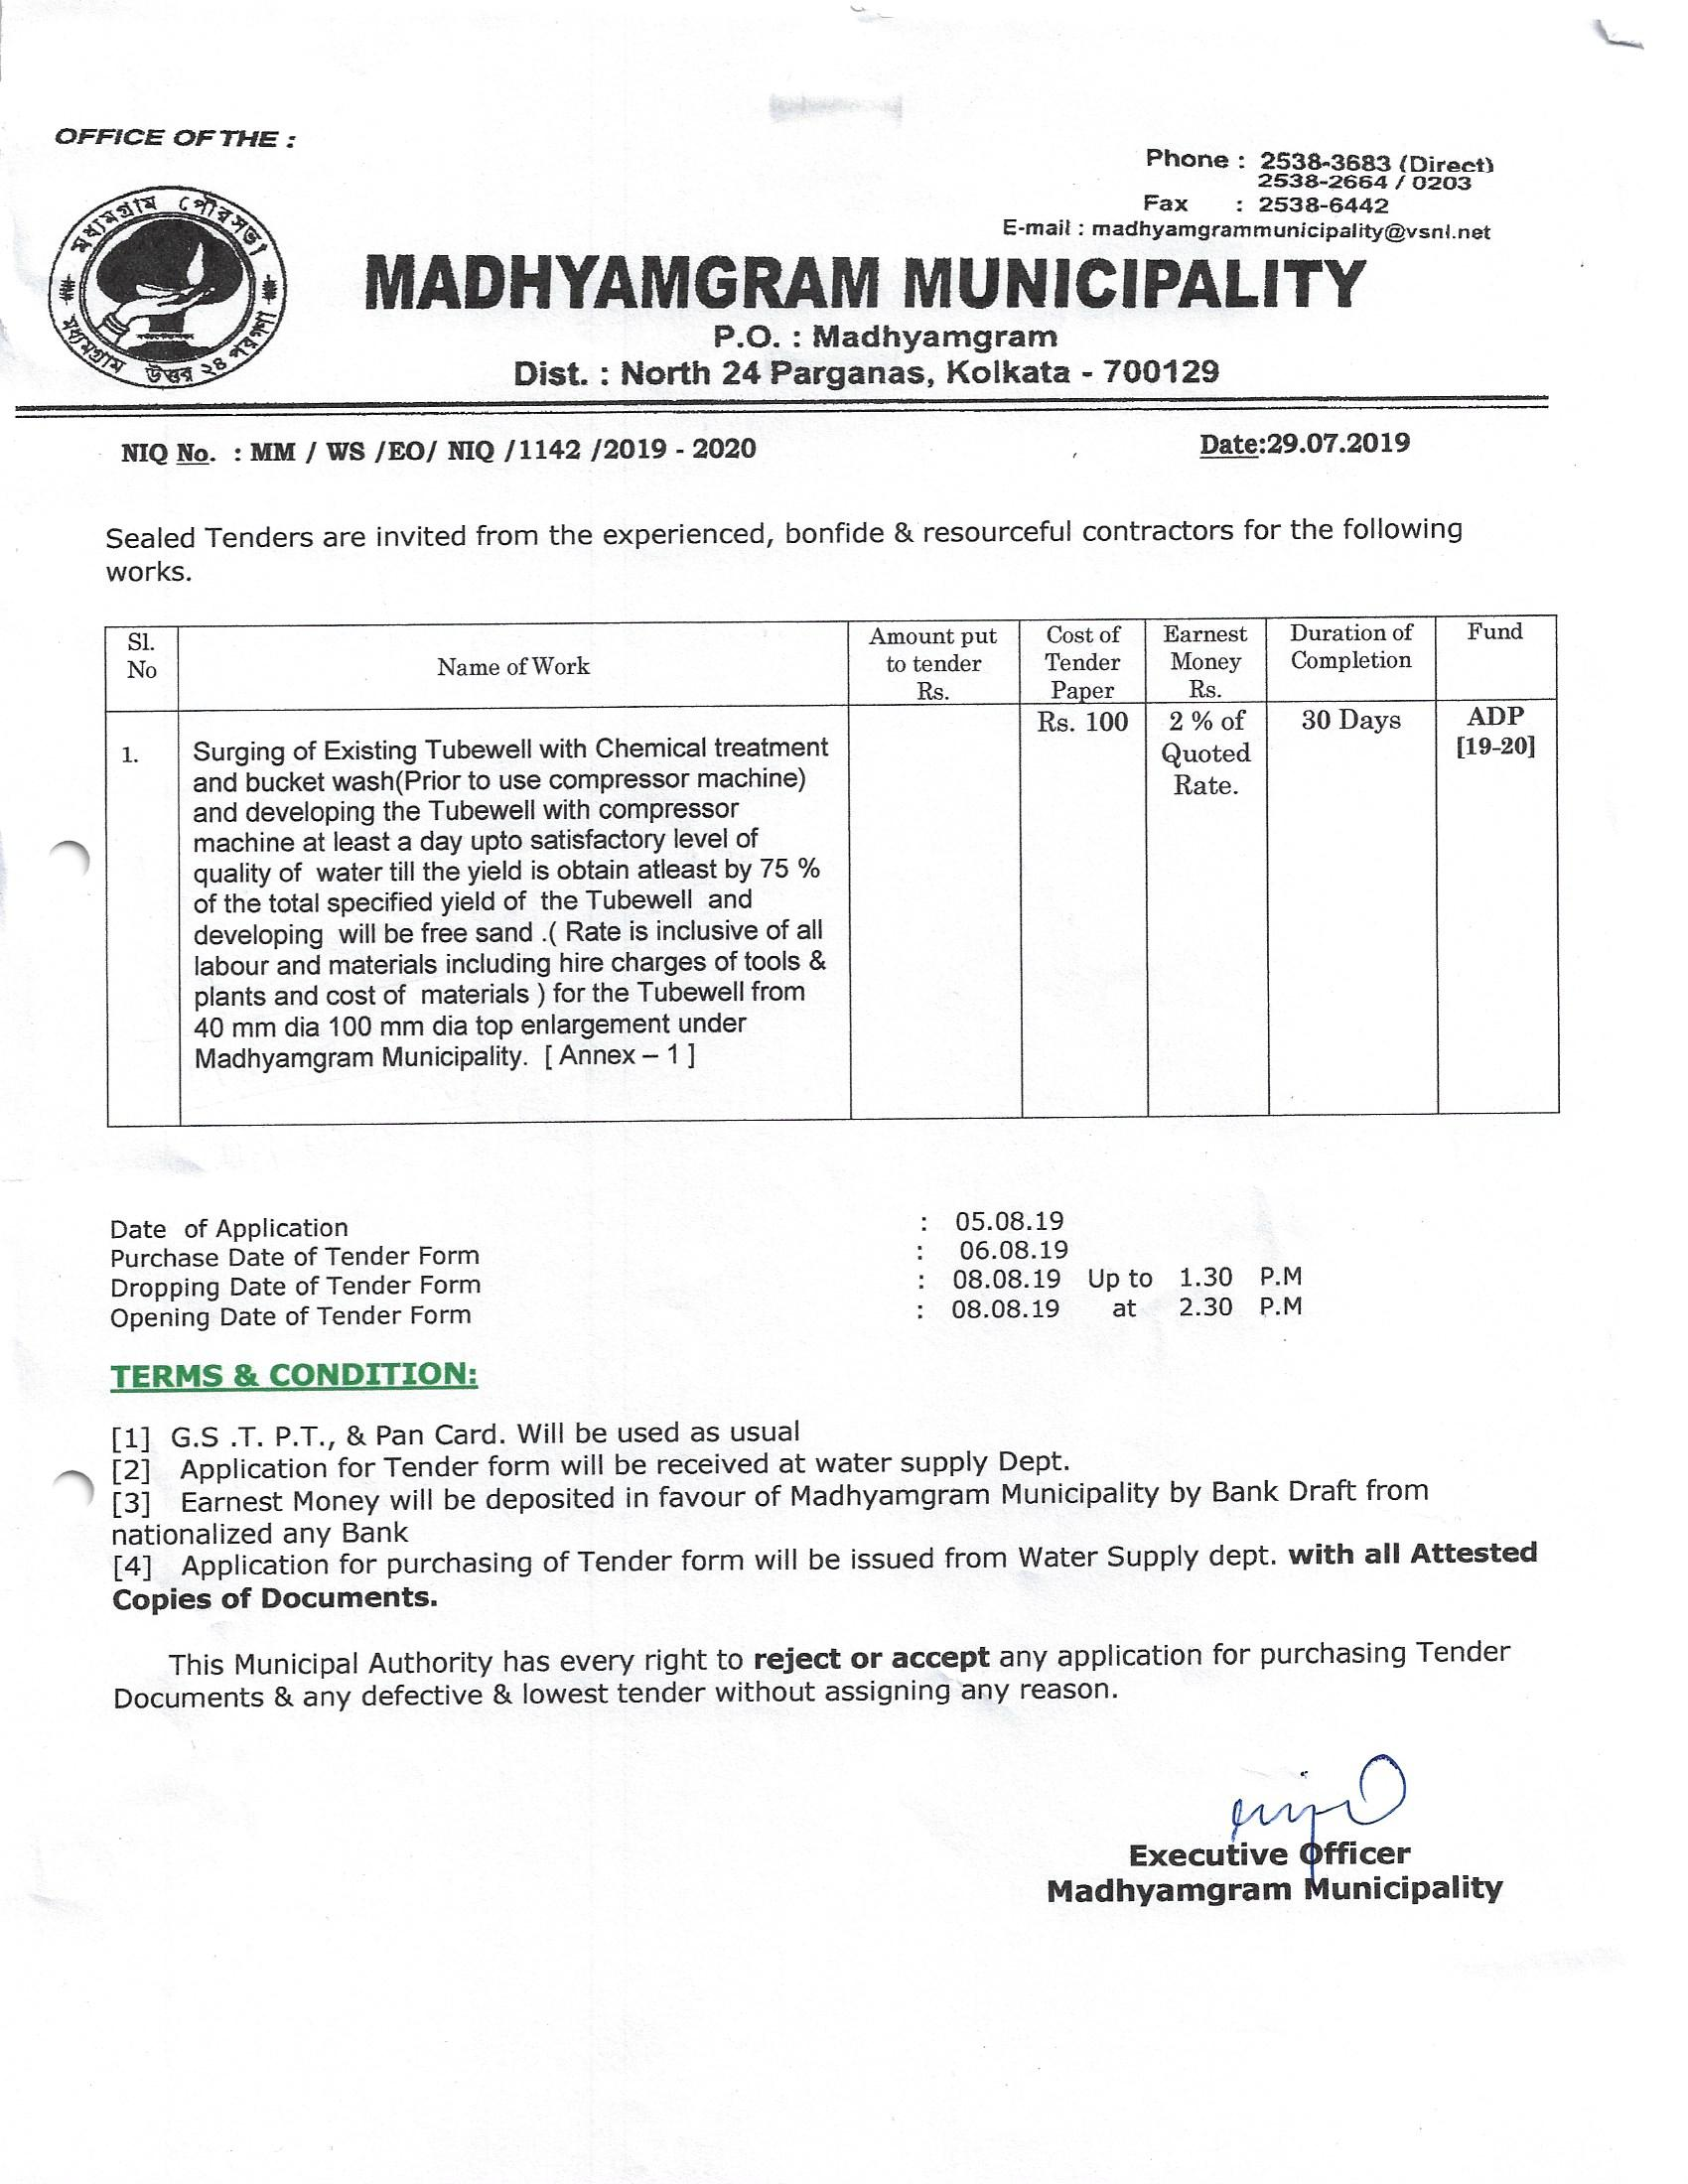 Welcome to madhyamgrammunicipality org